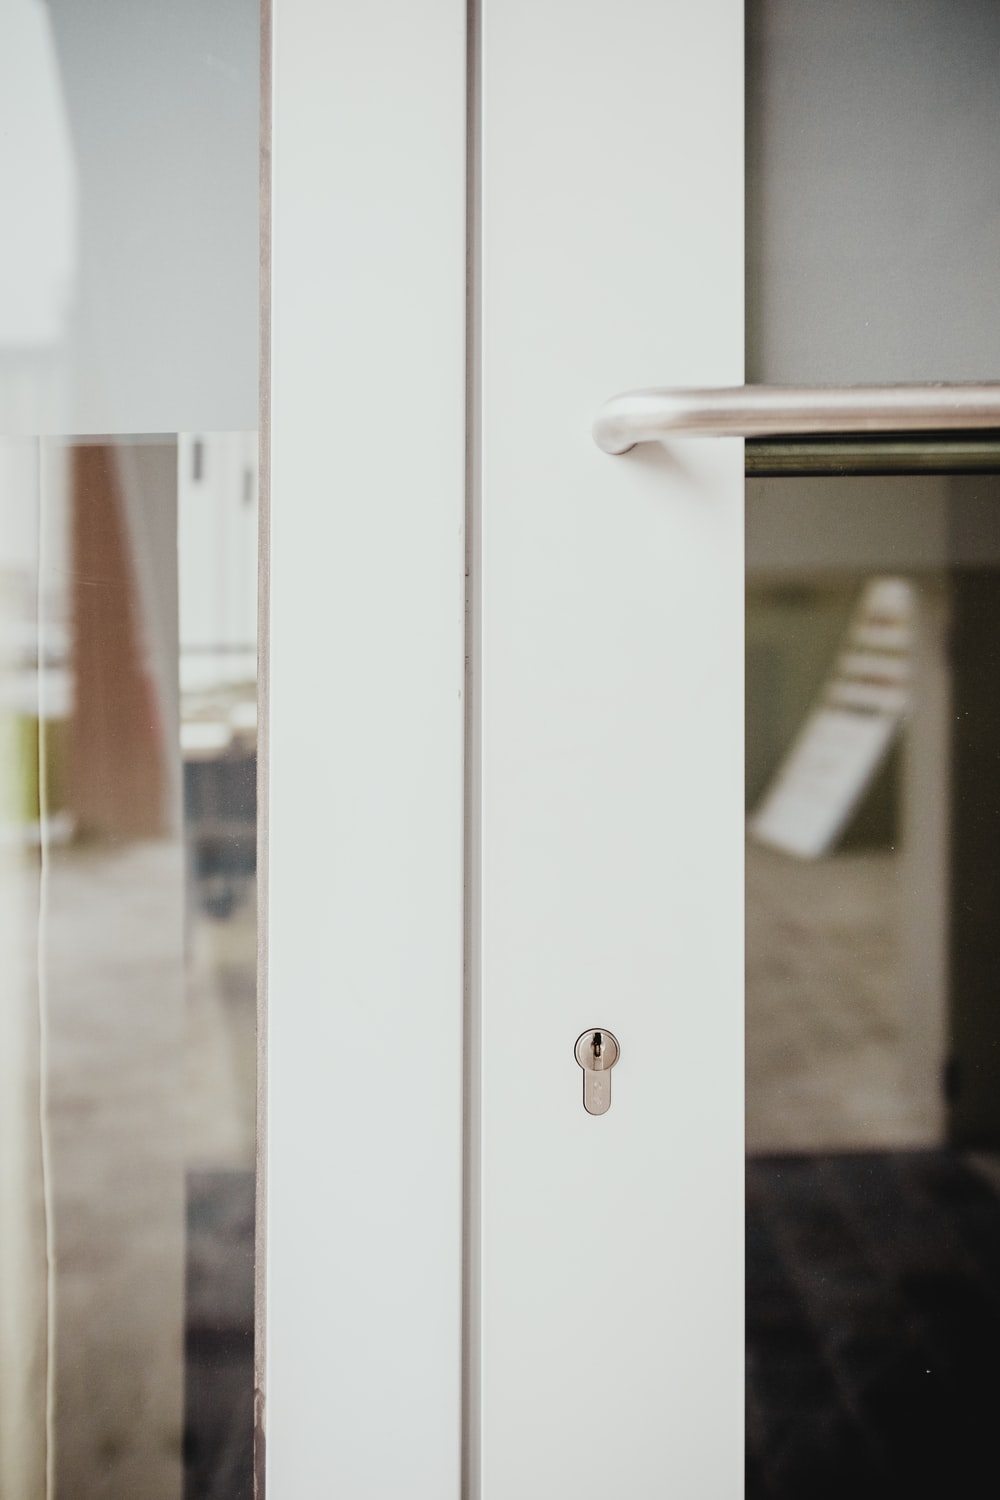 How To Choose Home Security Doors?